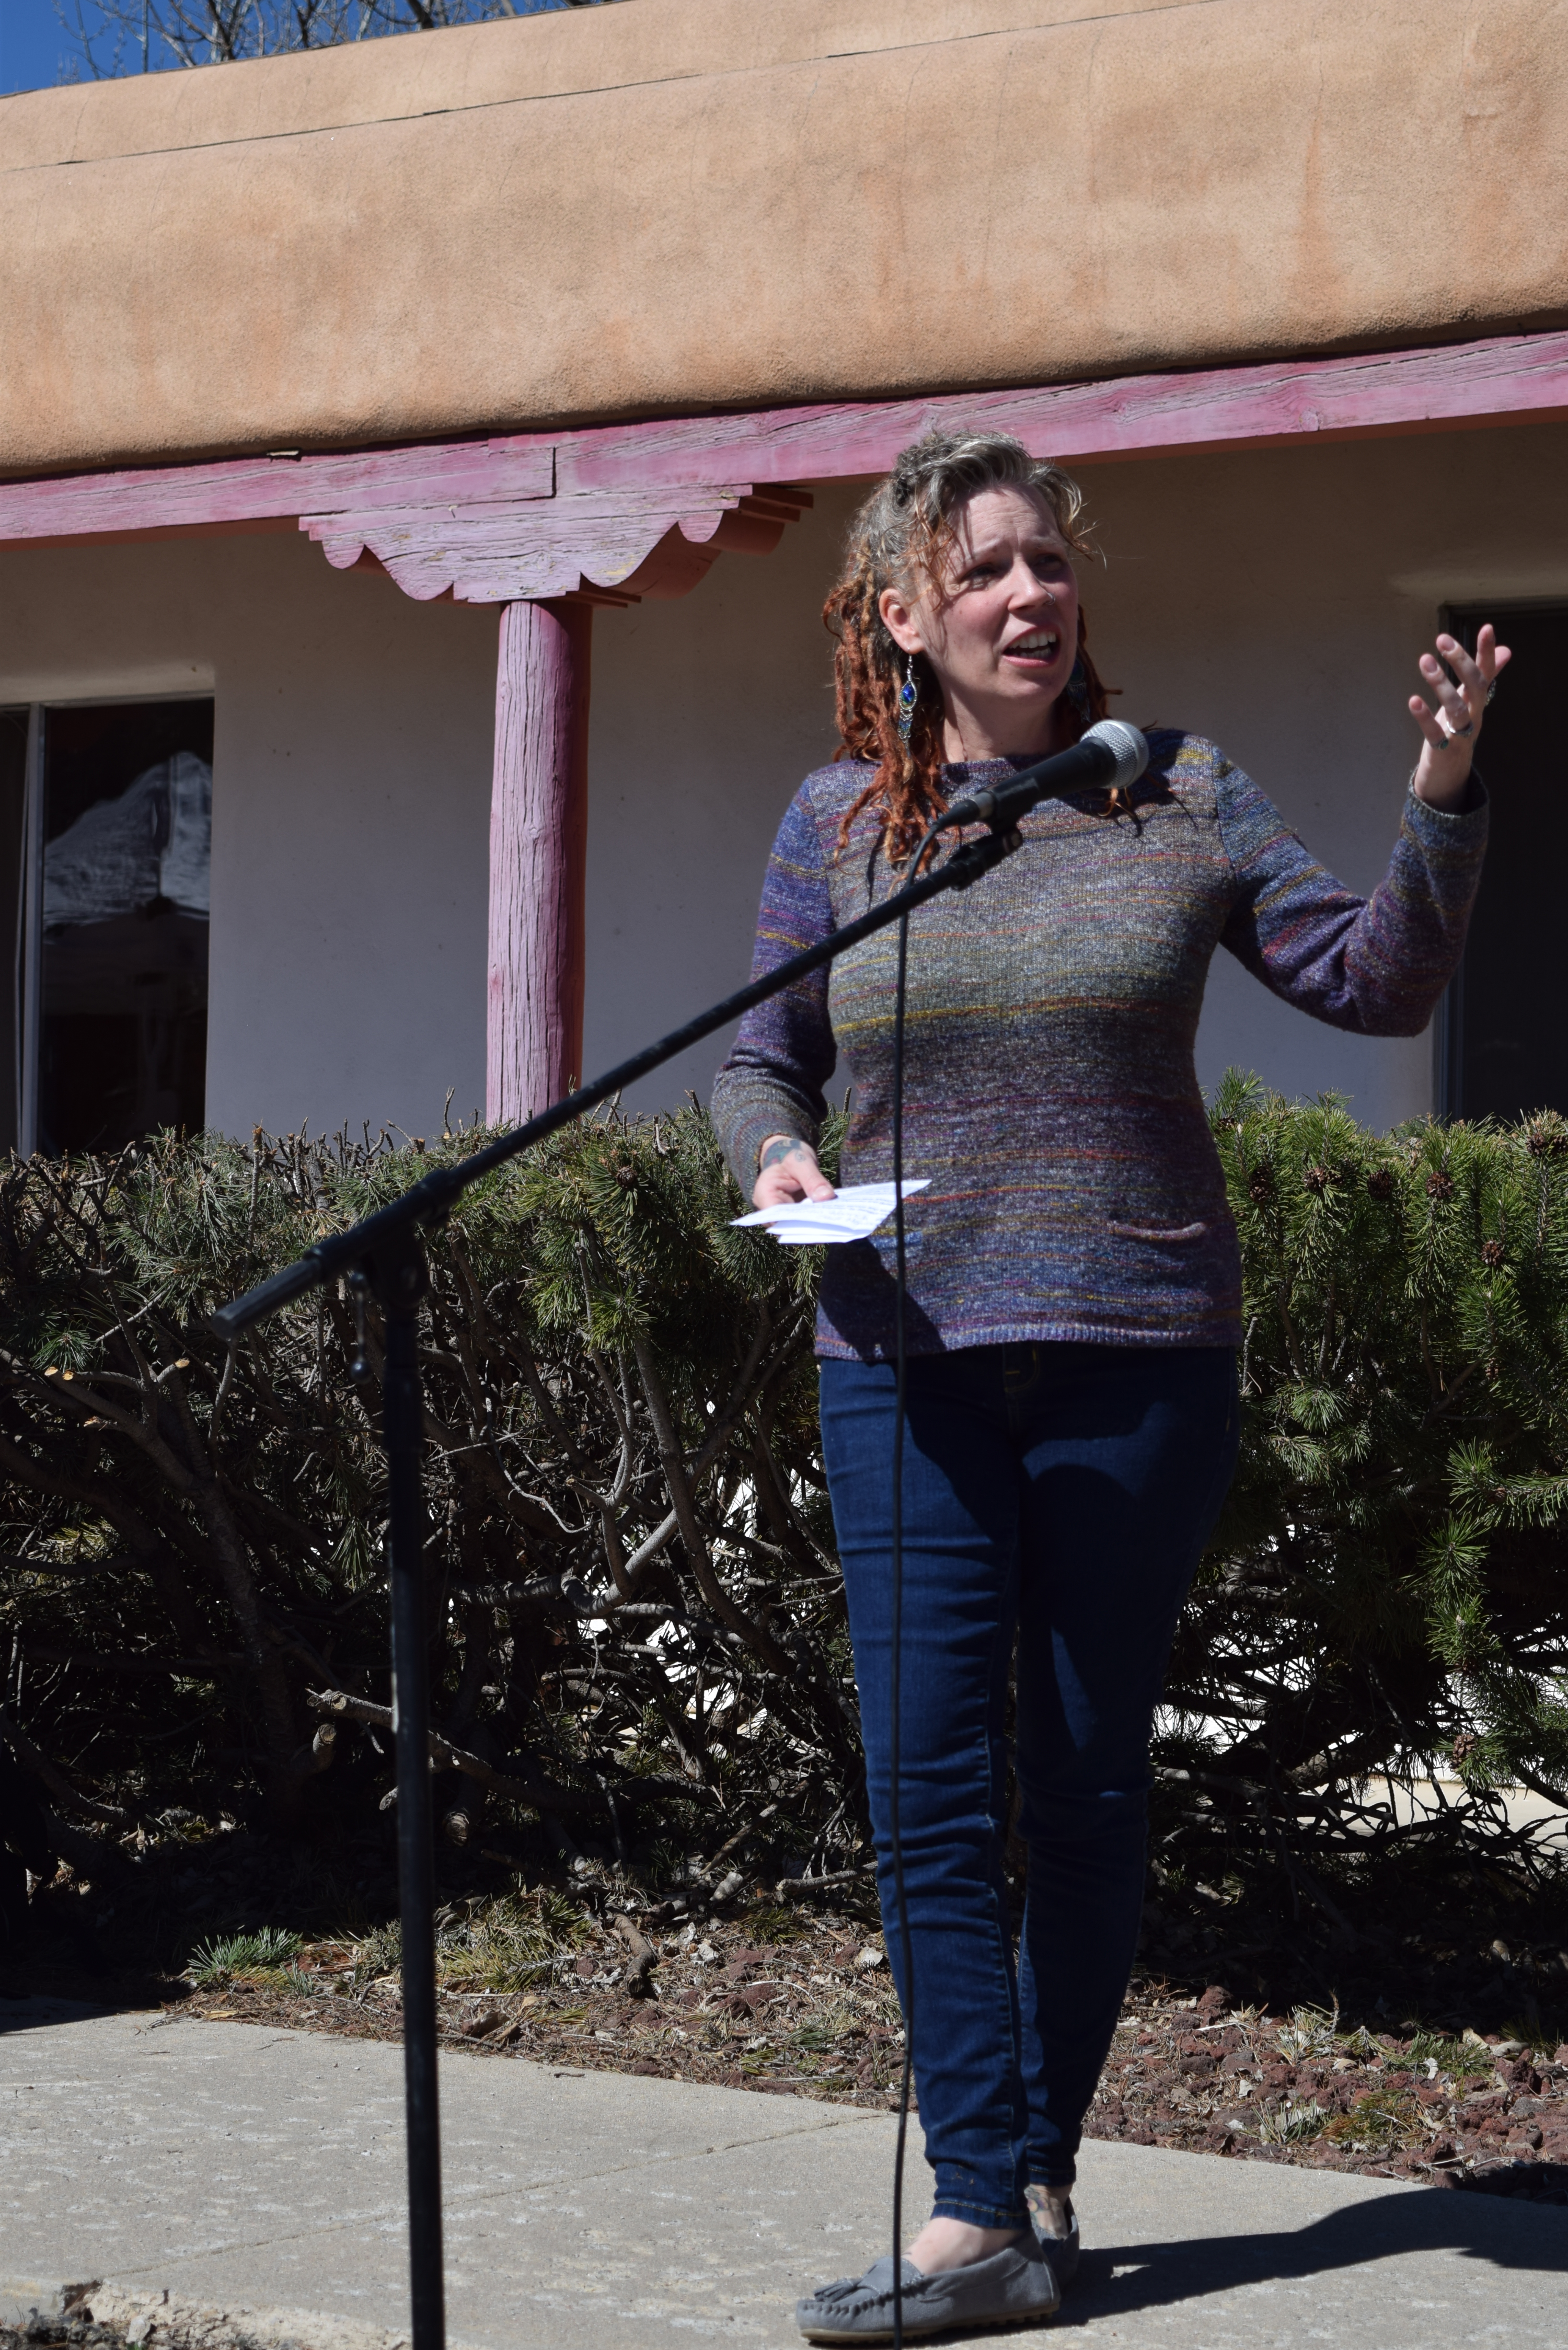 Woman standing and presenting in front of a microphone outside, gesturing with one hand, holding notes with the other